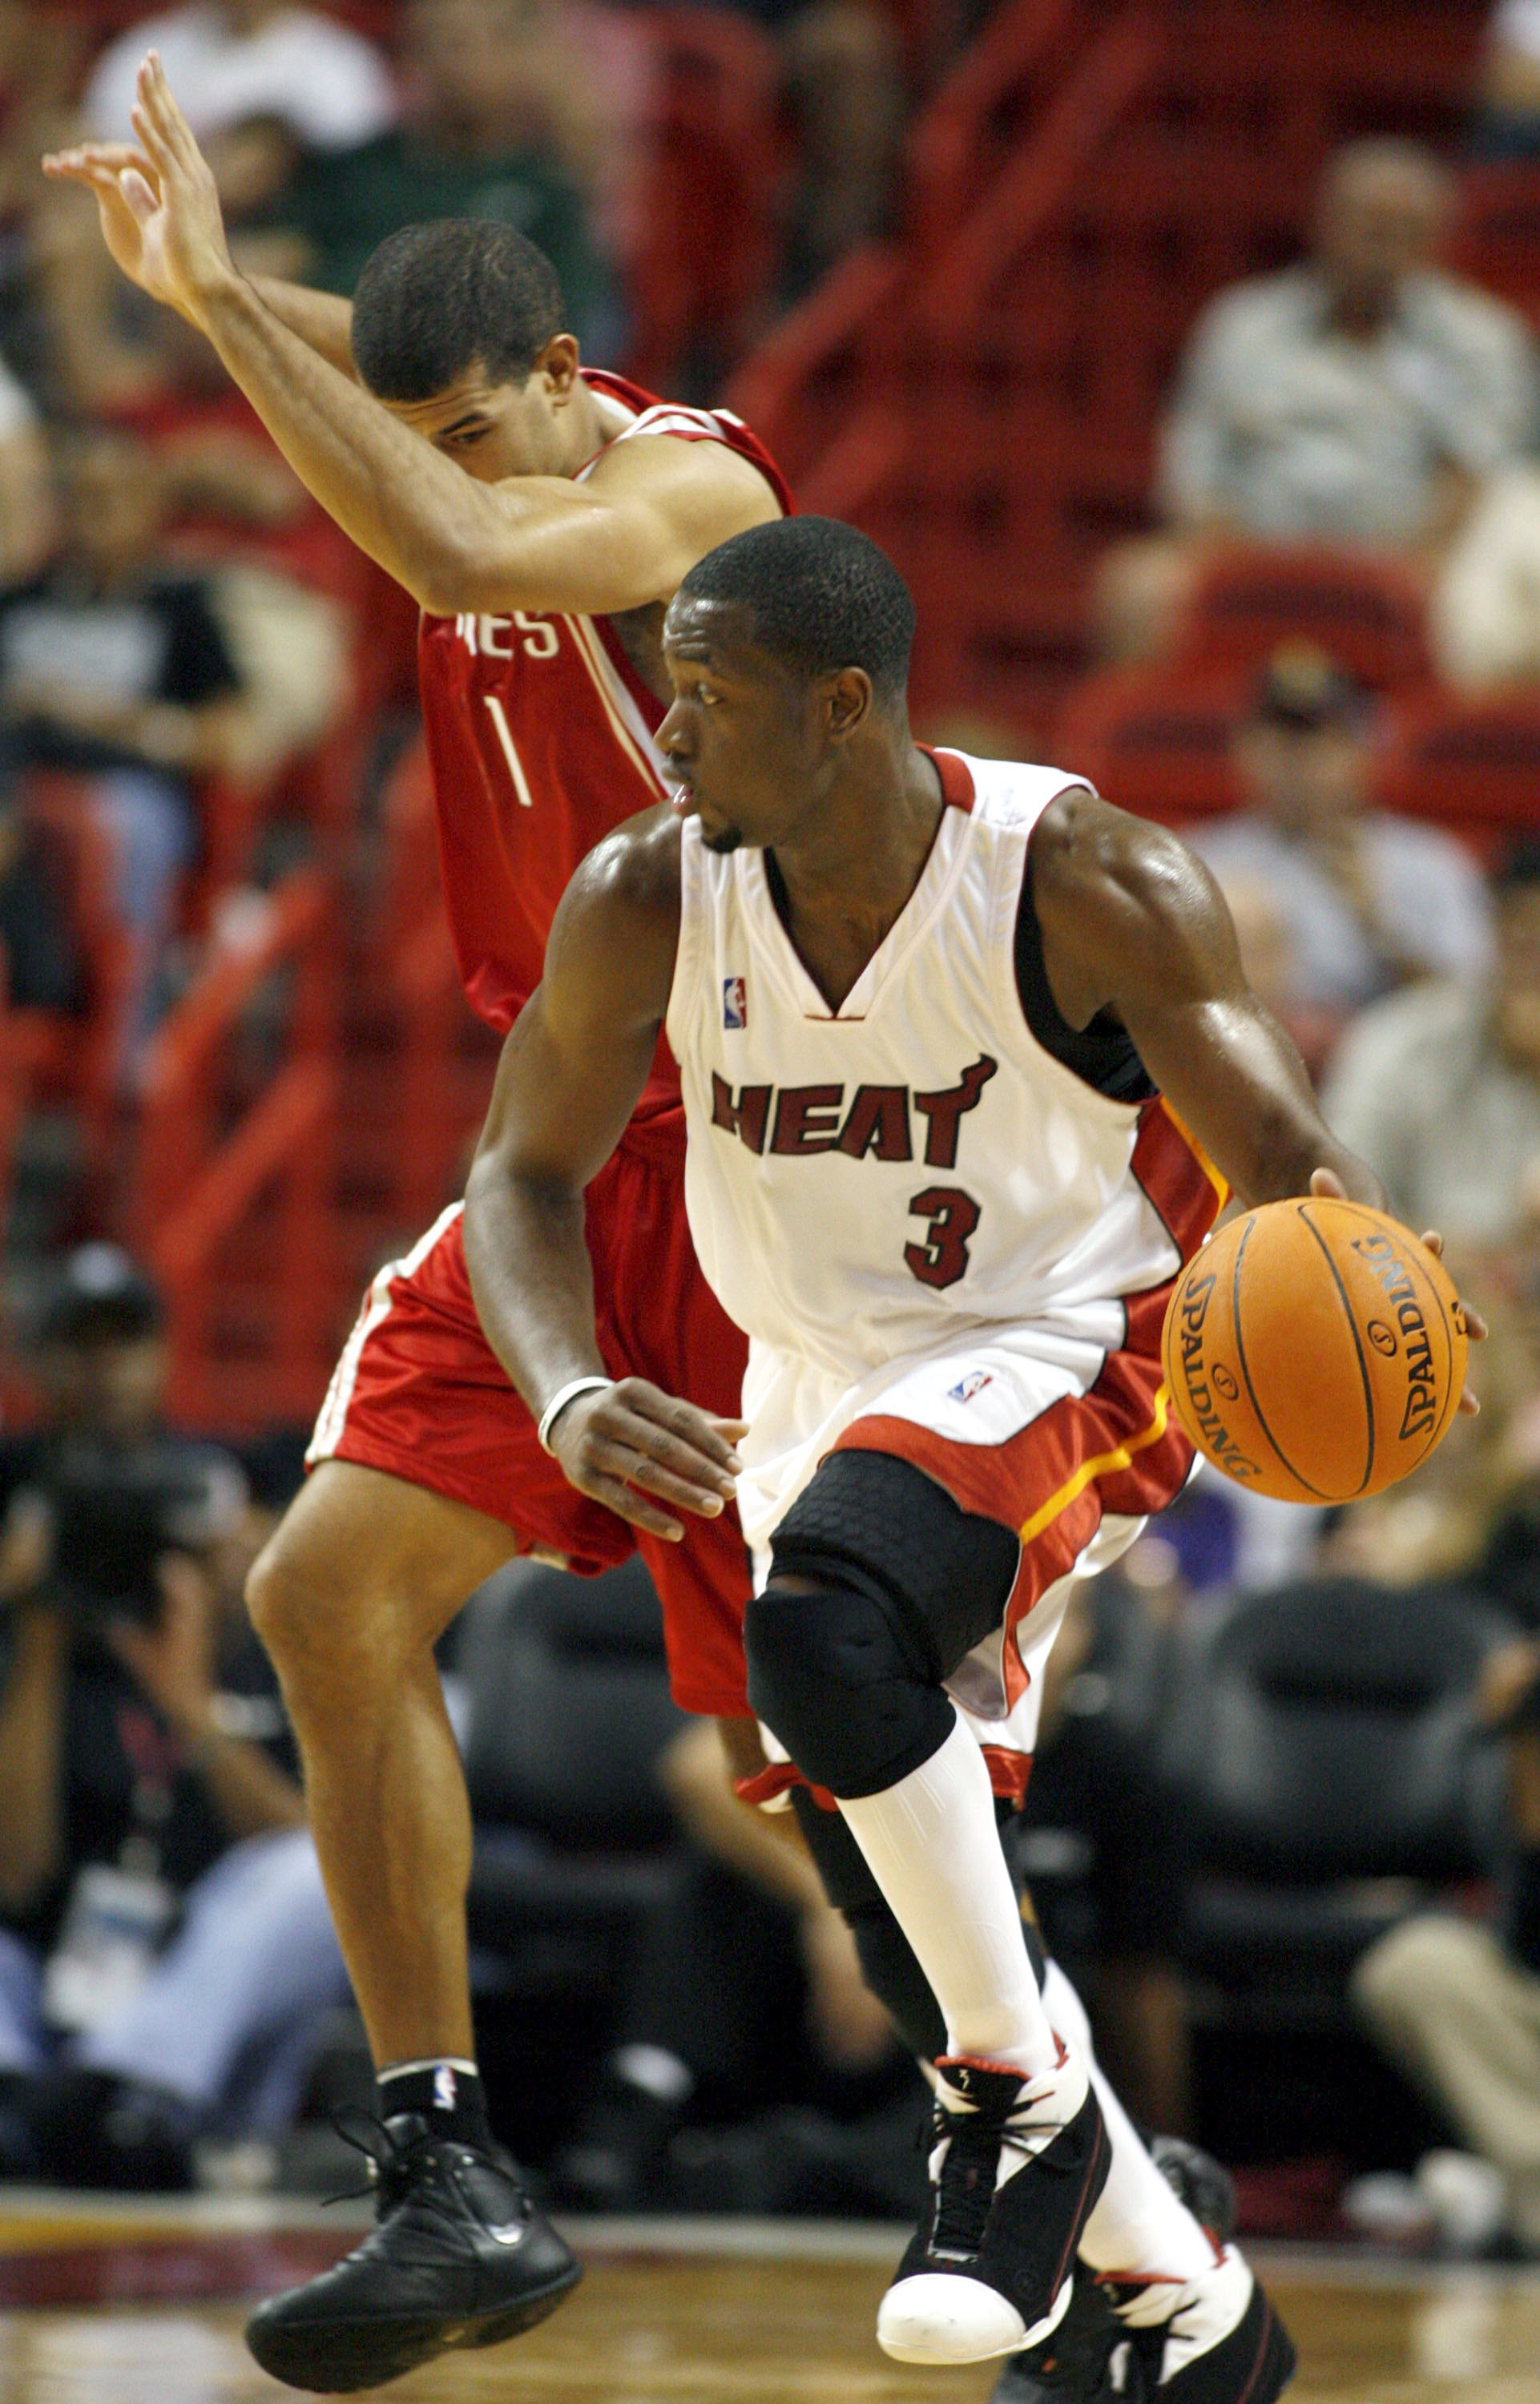 MIAMI - OCTOBER 25:  Guard Dwyane Wade #3 of the Miami Heat drives away from Shane Battier #31of the Houston Rockets during their preseason game on October 25, 2006 at the American Airlines Arena in Miami  Florida.  NOTE TO USER: User expressly acknowledg